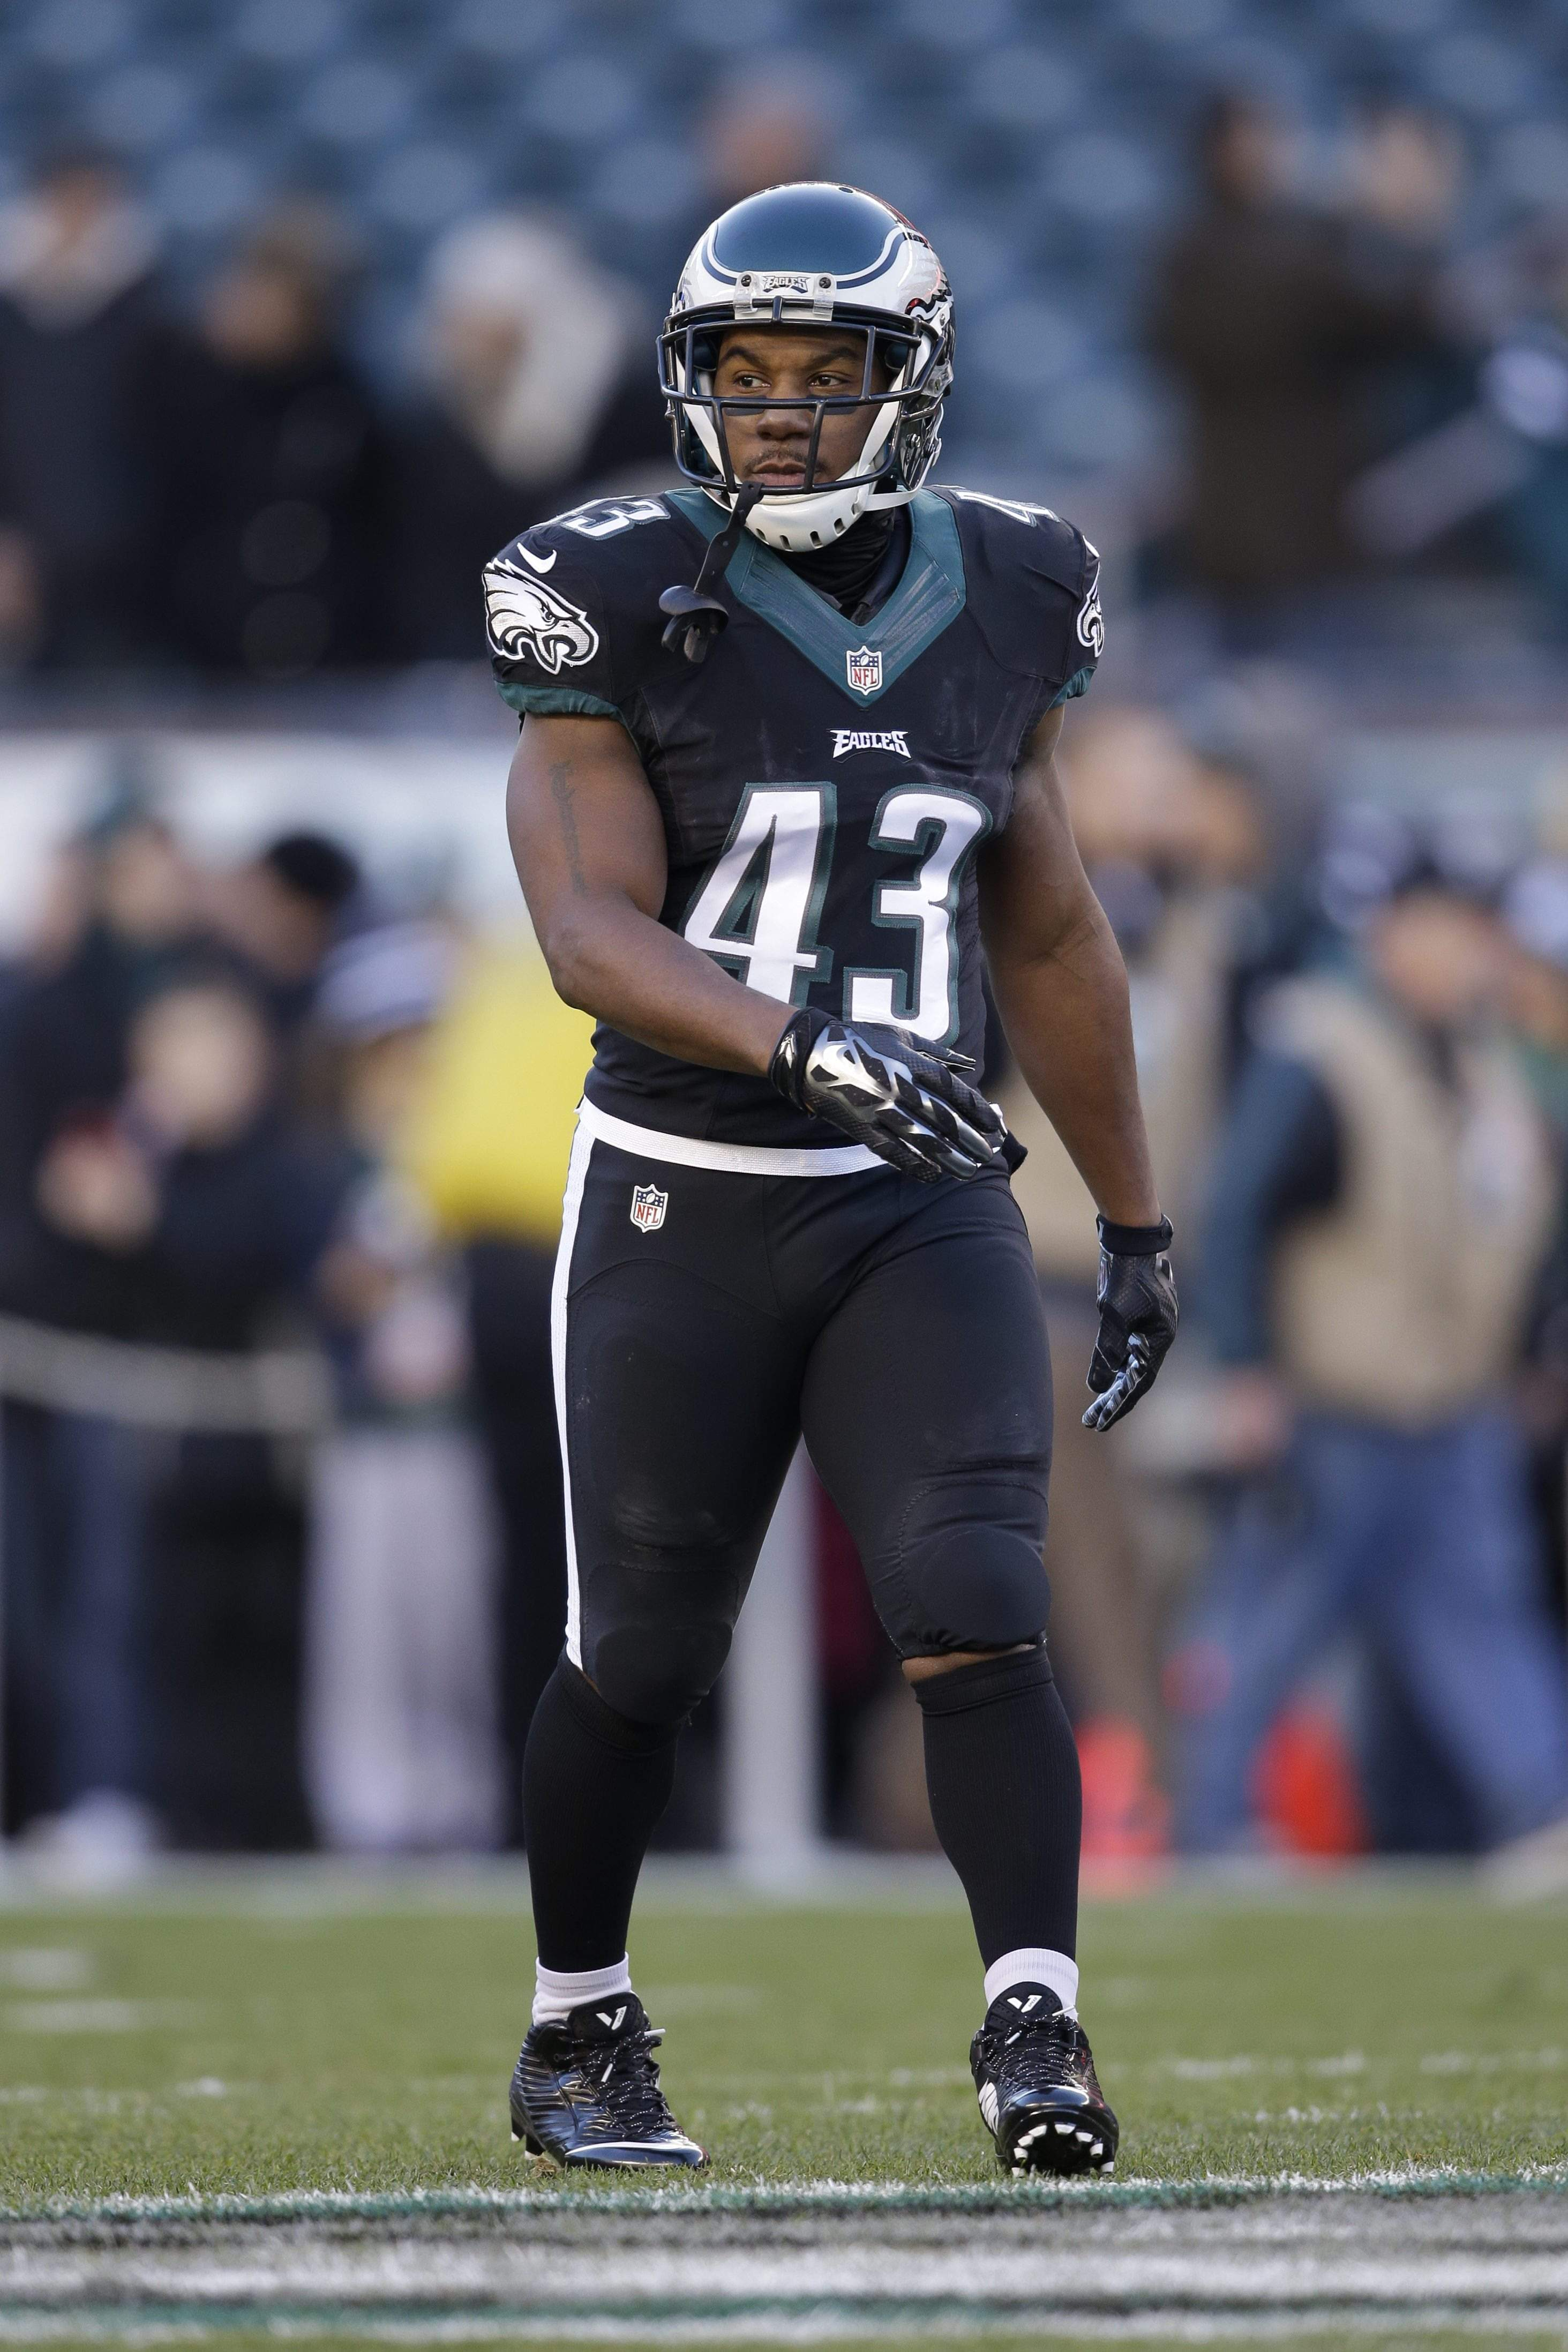 Eagles' Sproles getting fewer touches after quick start - News ...